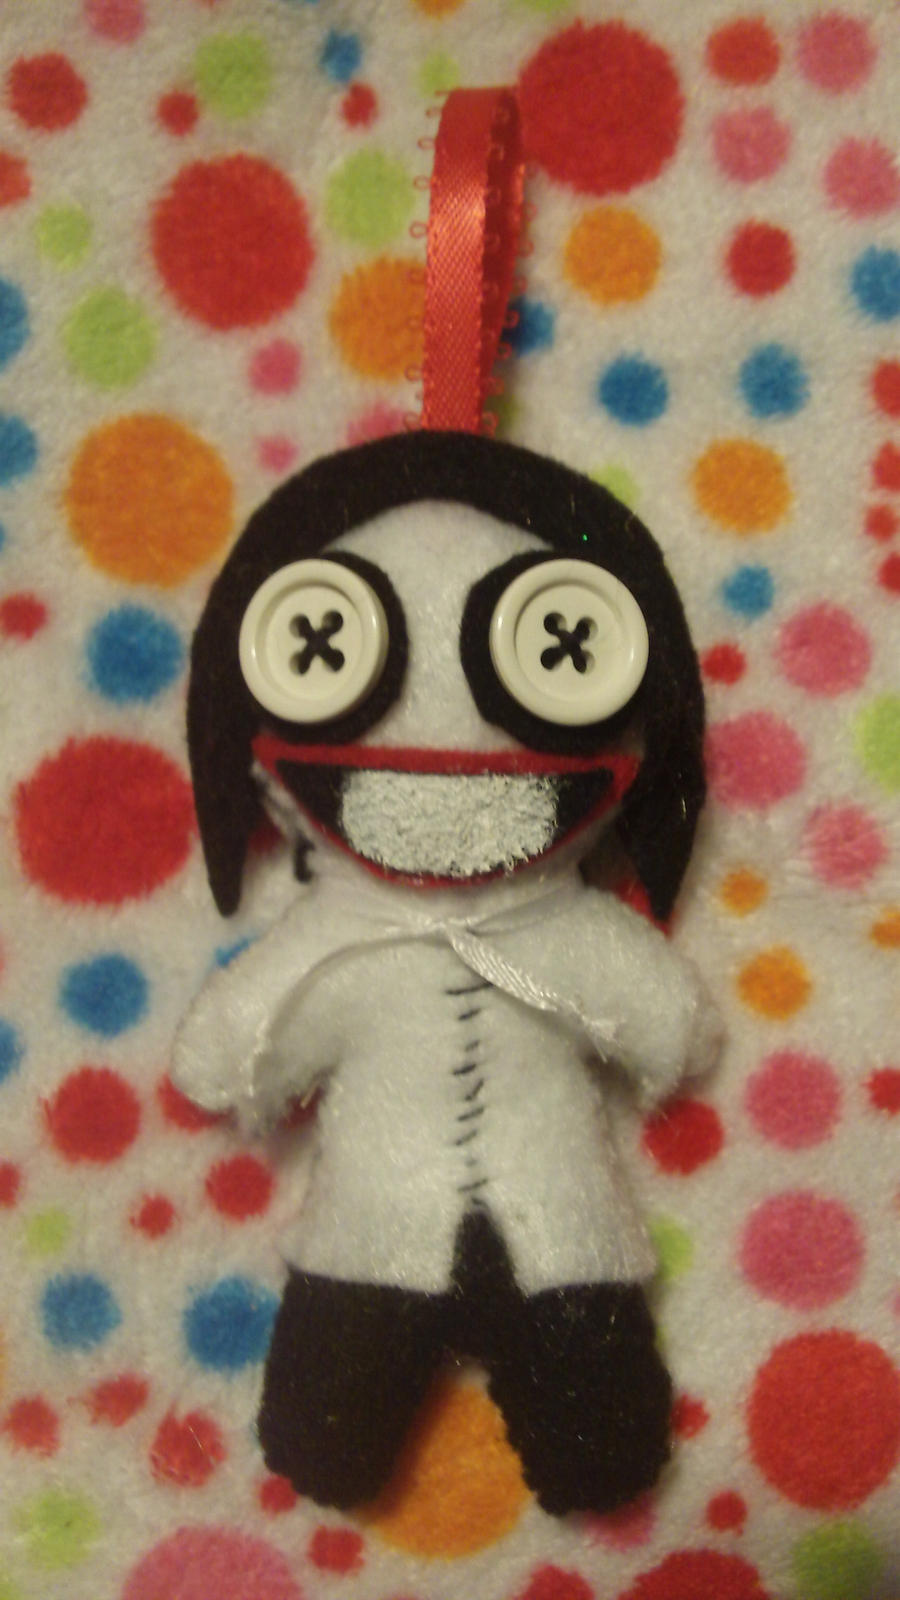 Jeff the Killer Plush Keychain by KaleidoscopicFungi